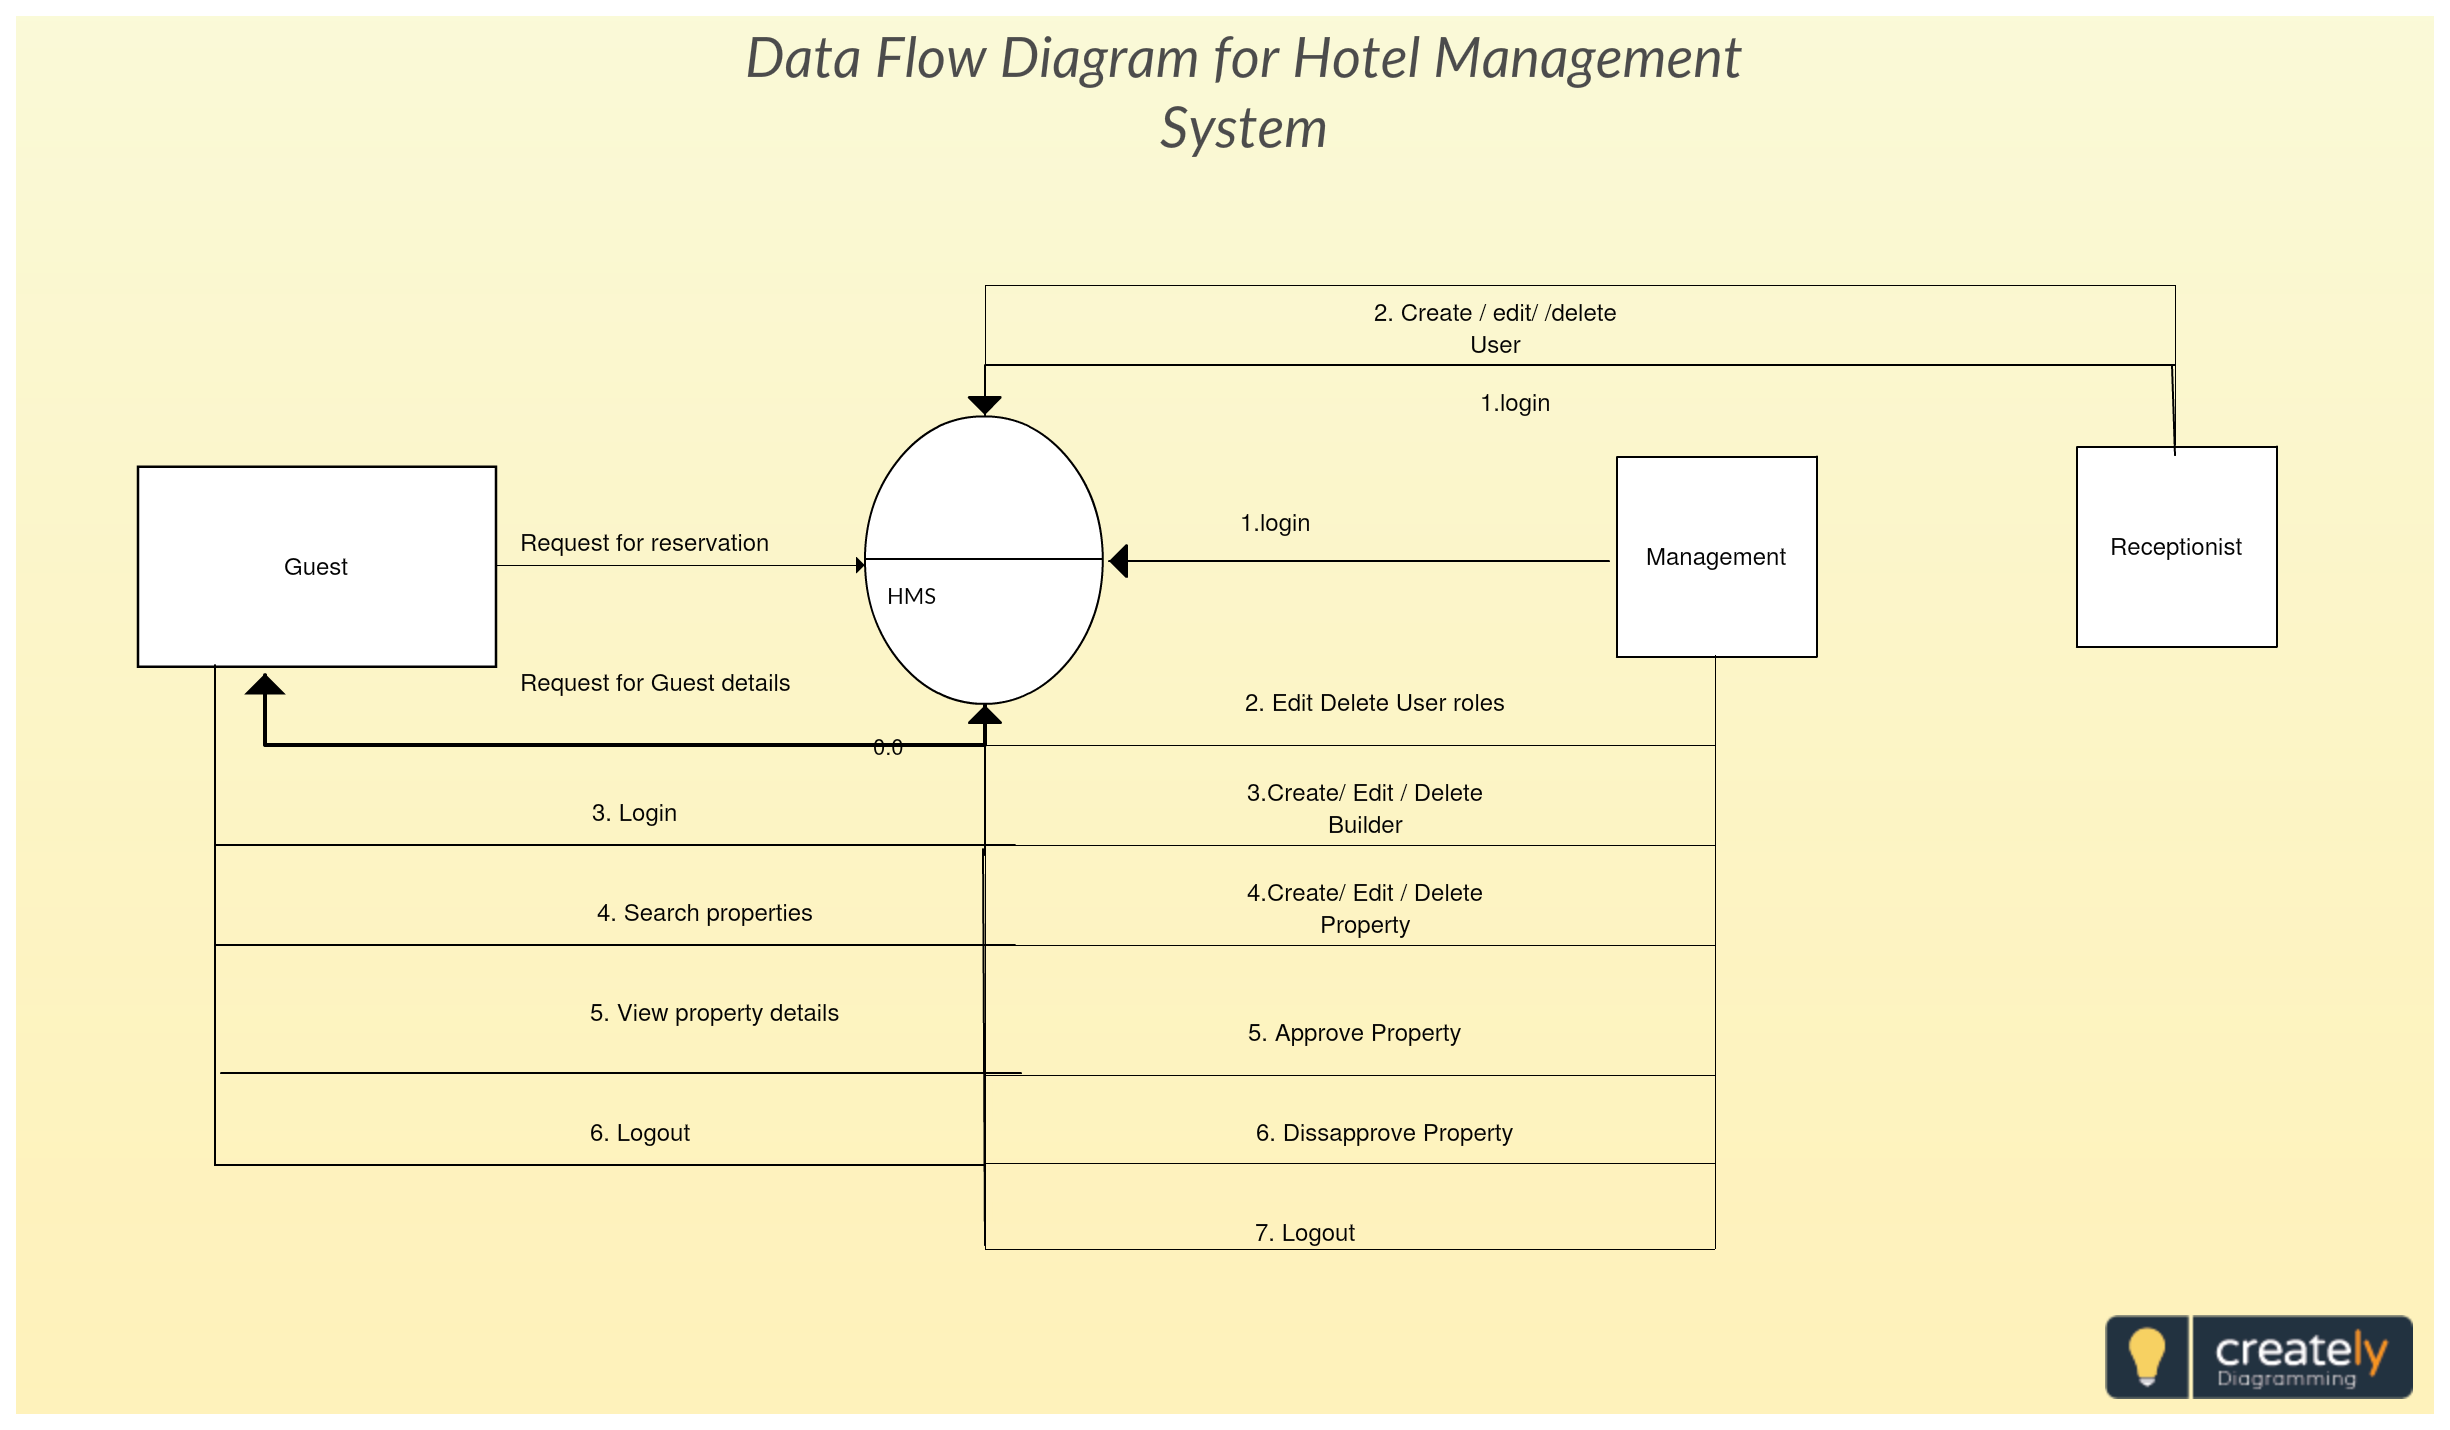 Data Flow Diagram Showing Hotel Management System The Diagram Shows The Flow Of Information Through A Hotel Management Data Flow Diagram Flow Diagram Example